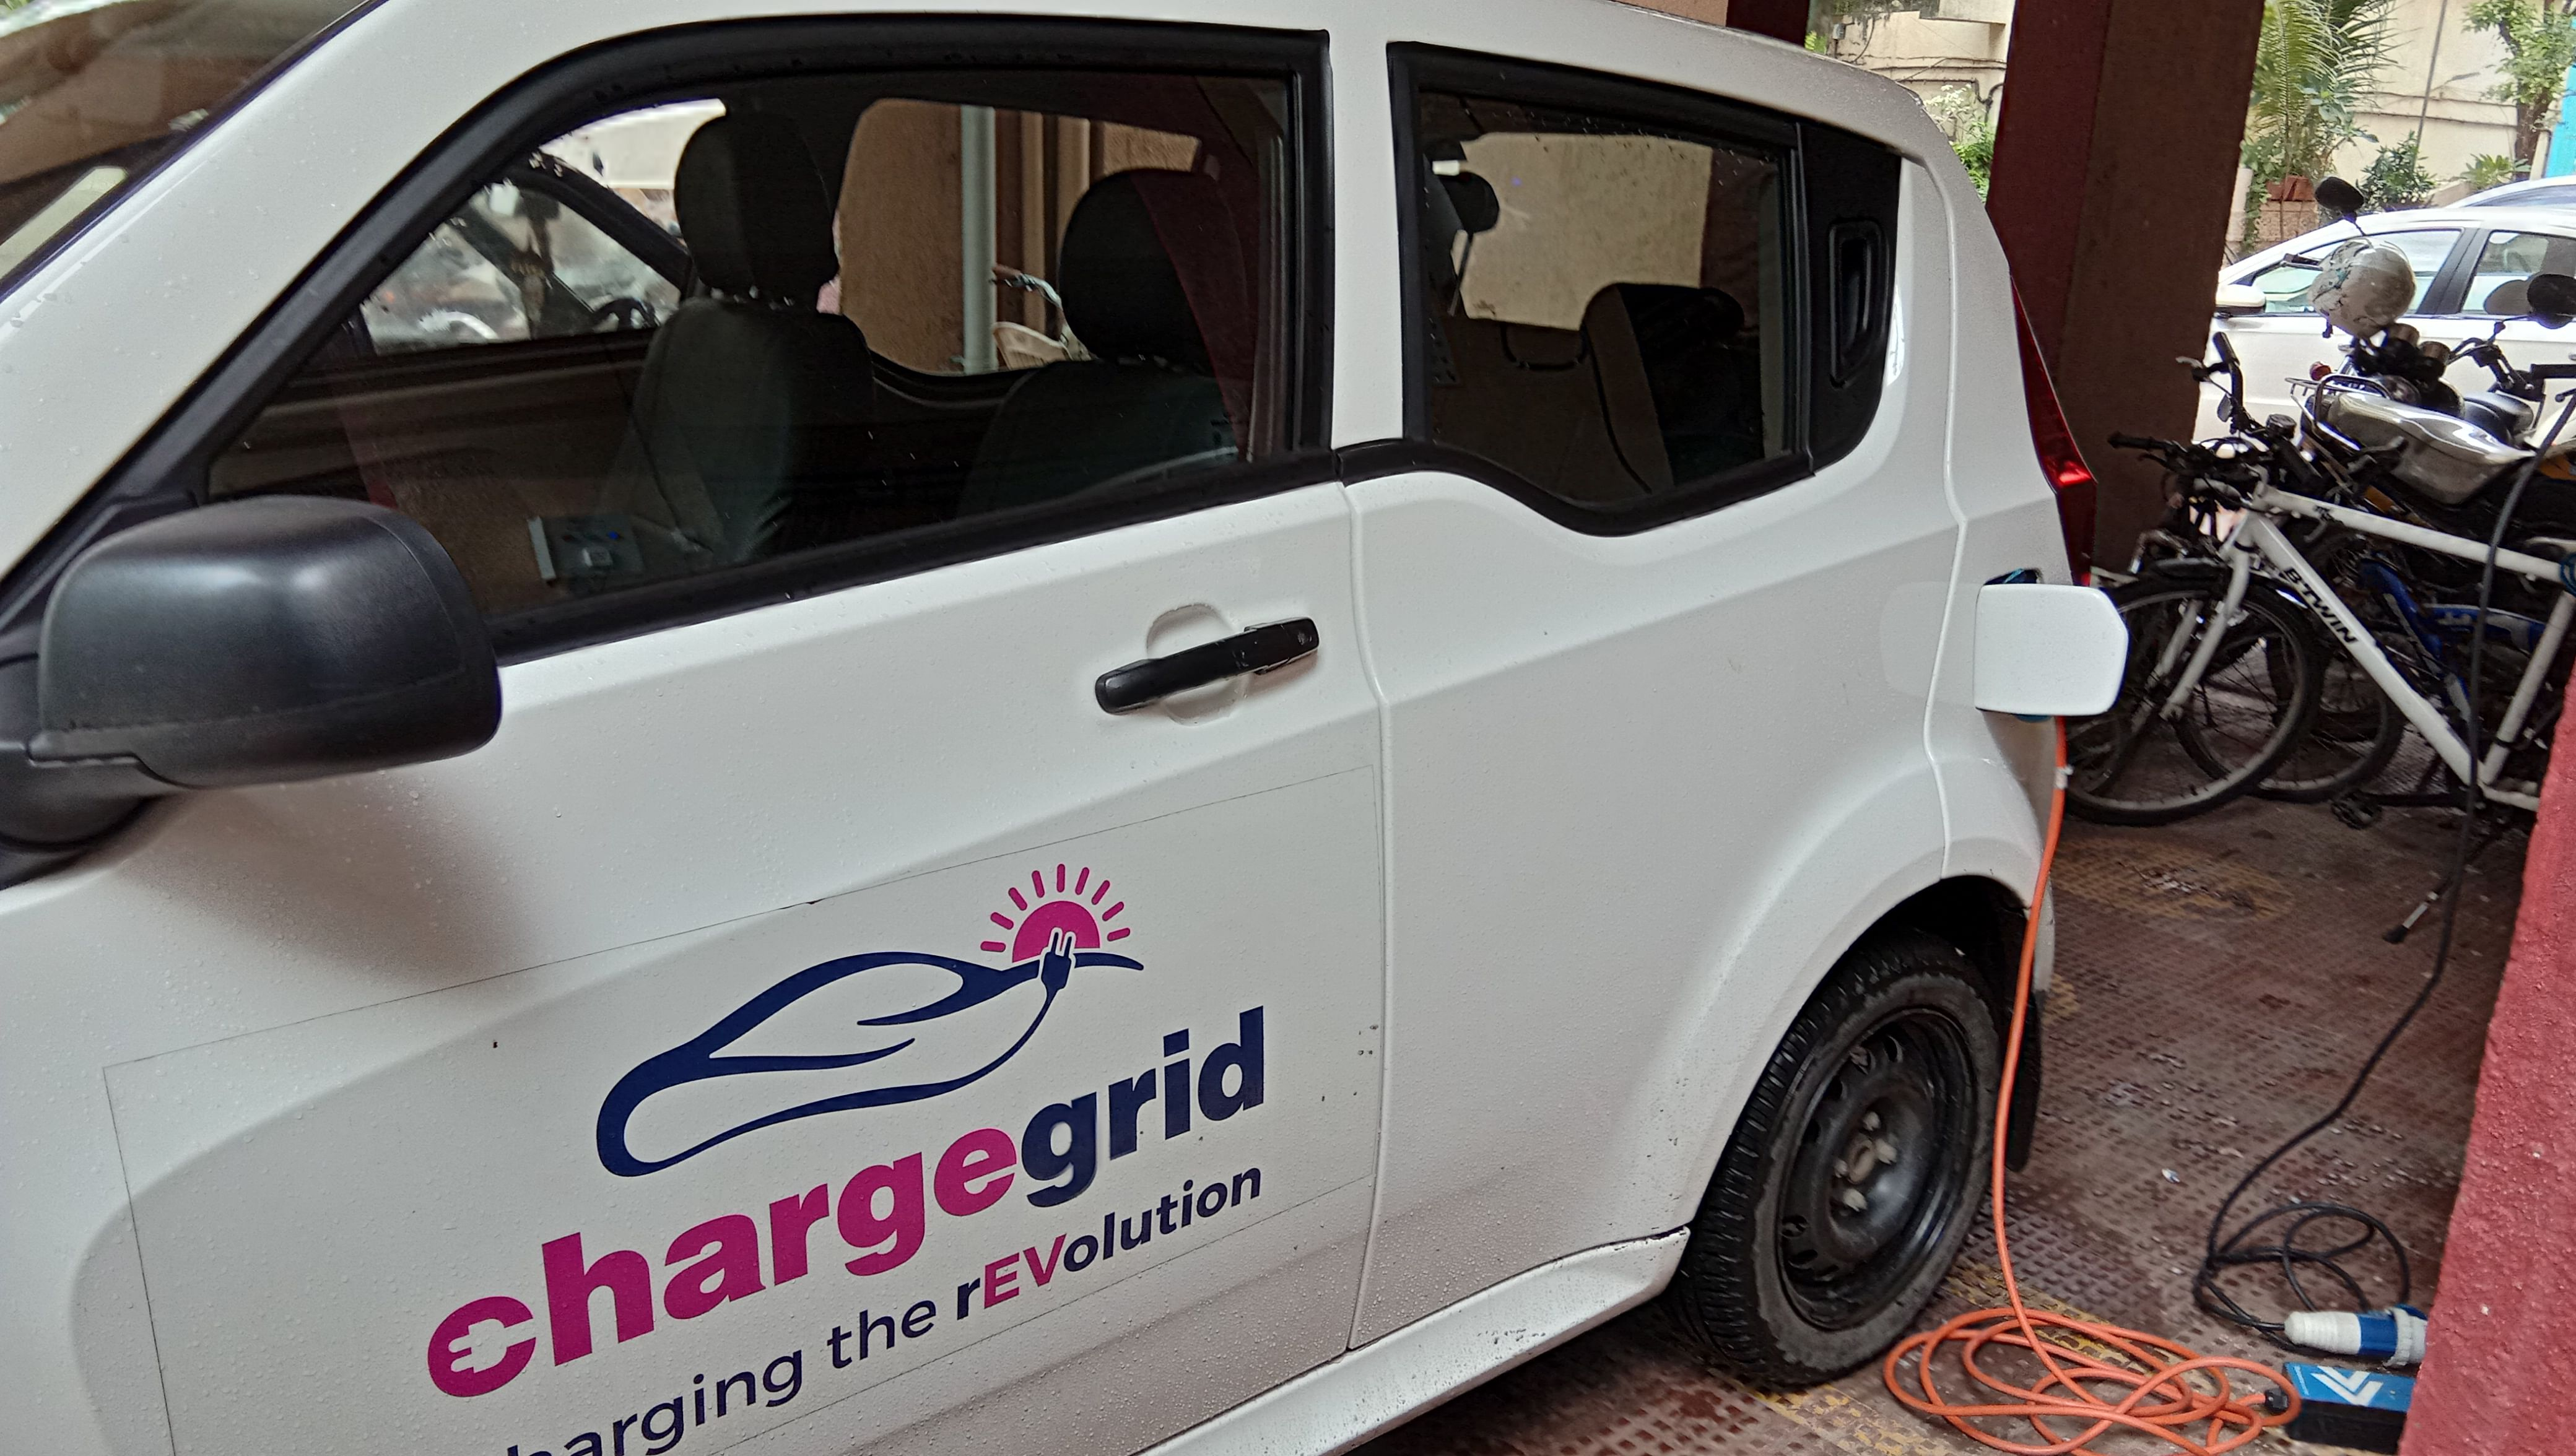 Charging your car while parking it. (Source: Magenta Power)